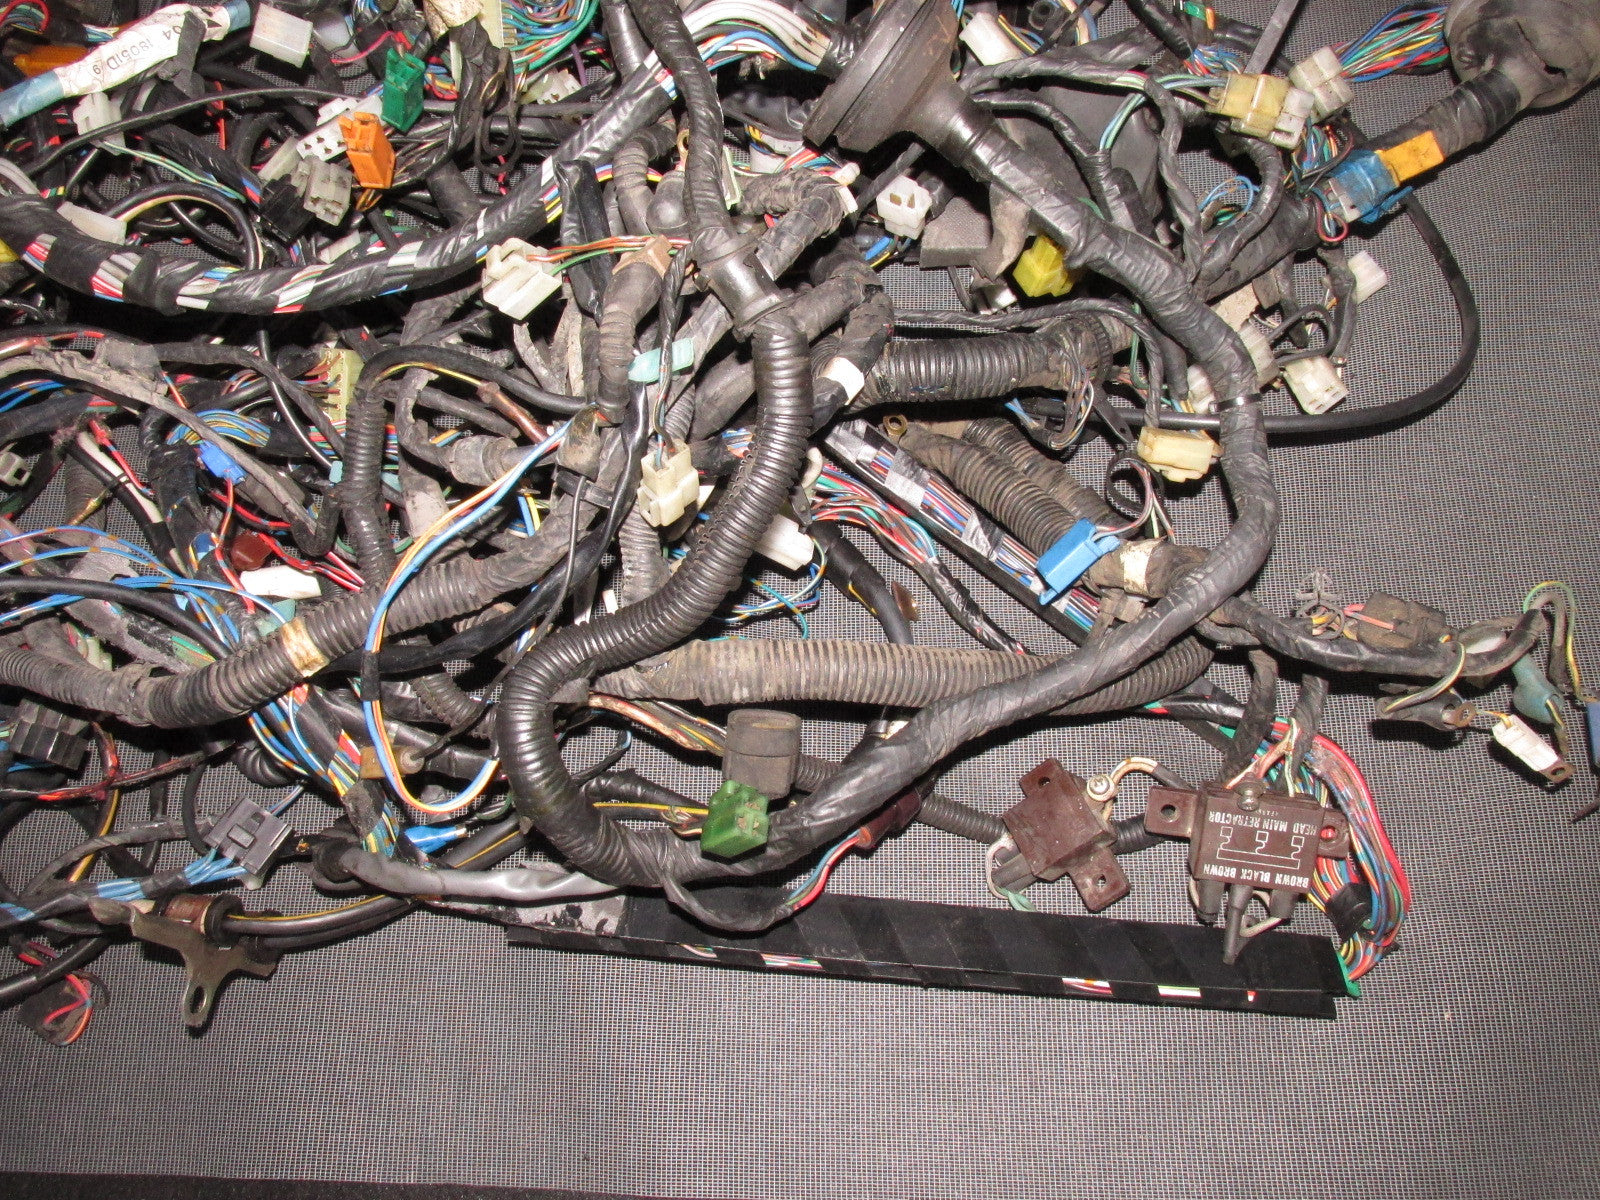 IMG_5541?v=1447885528 84 85 mazda rx7 oem 13b gsl se m t complete wiring harness 13b wiring harness at bakdesigns.co